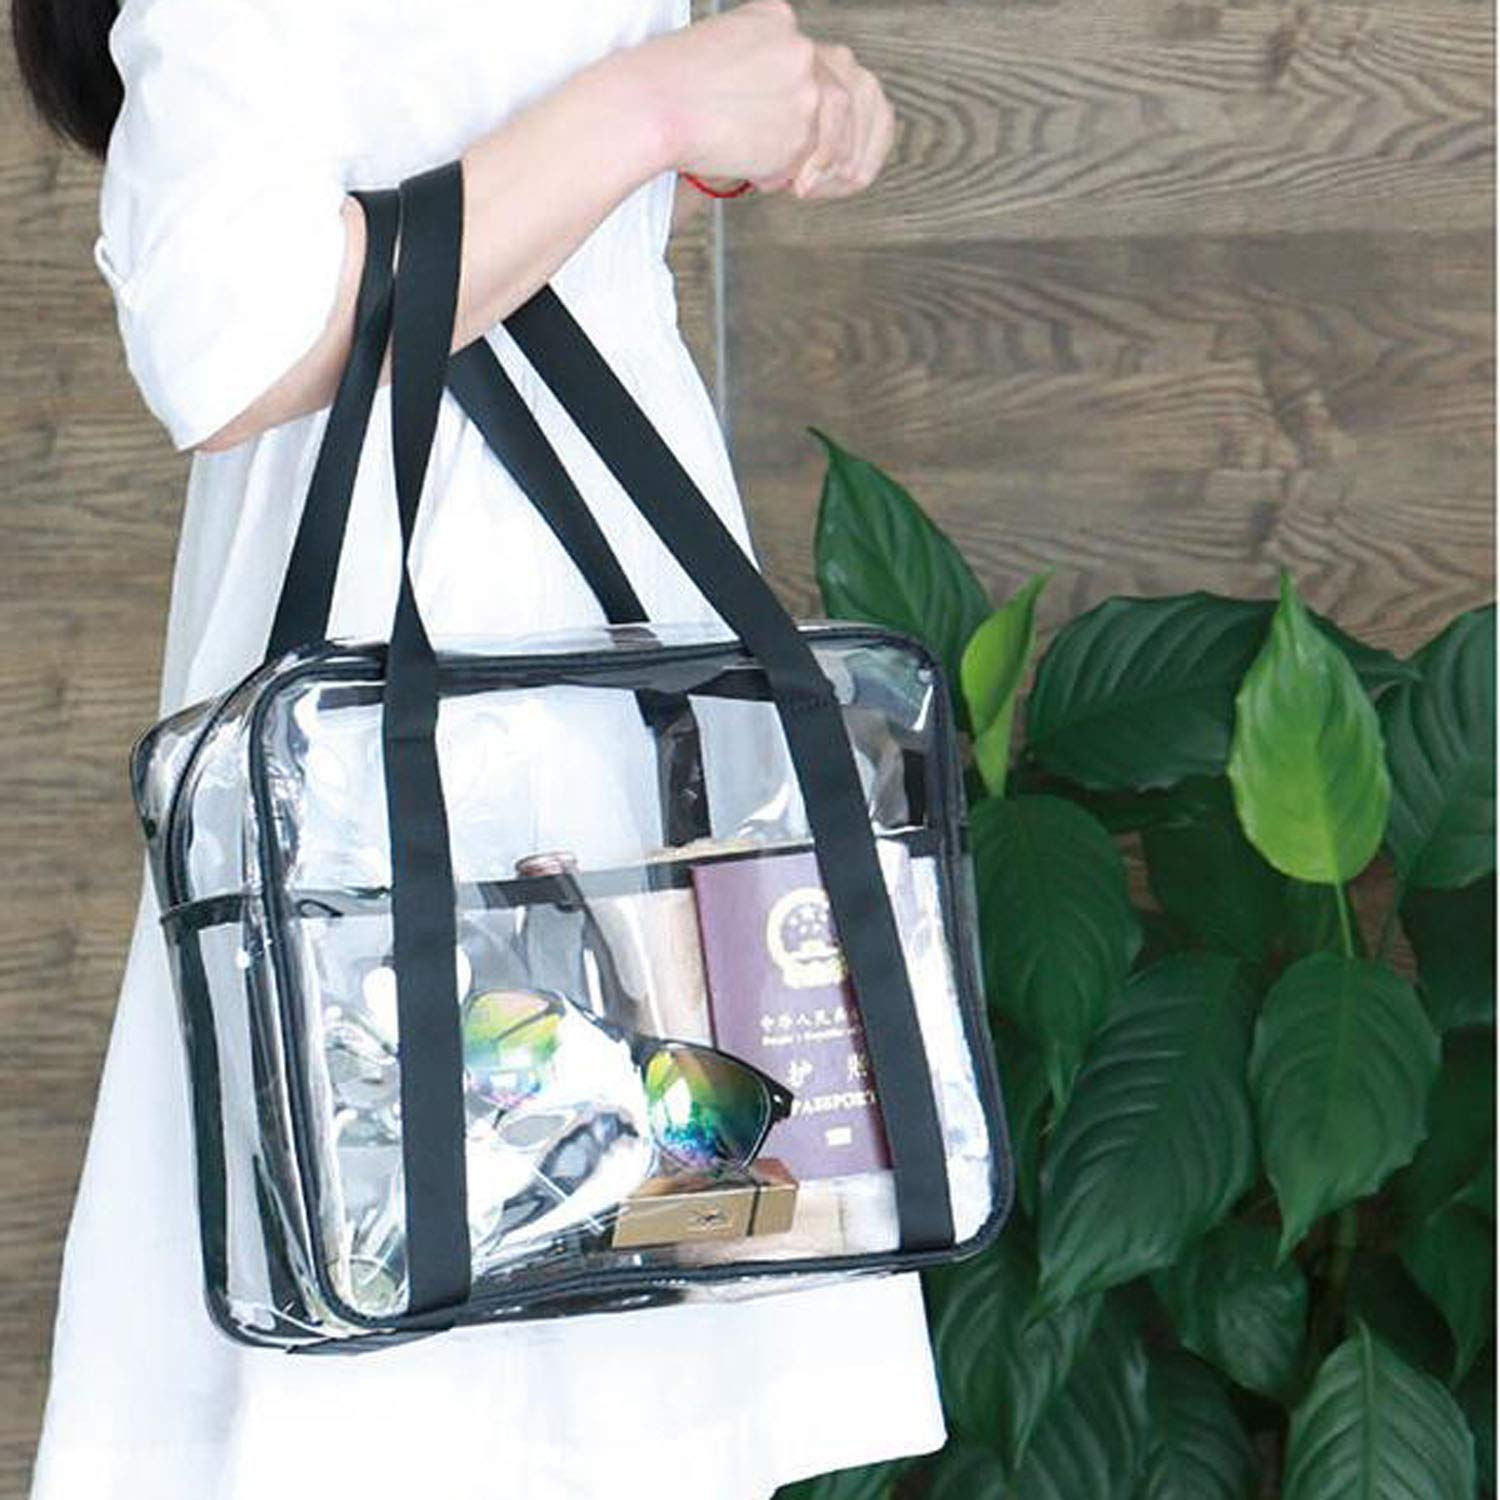 S 7.877.873.15INCH Sports Games,Travel Clear bag,Clear Tote Bag with Zipper Closure,Waterproof and High Capacity Perfect for Work